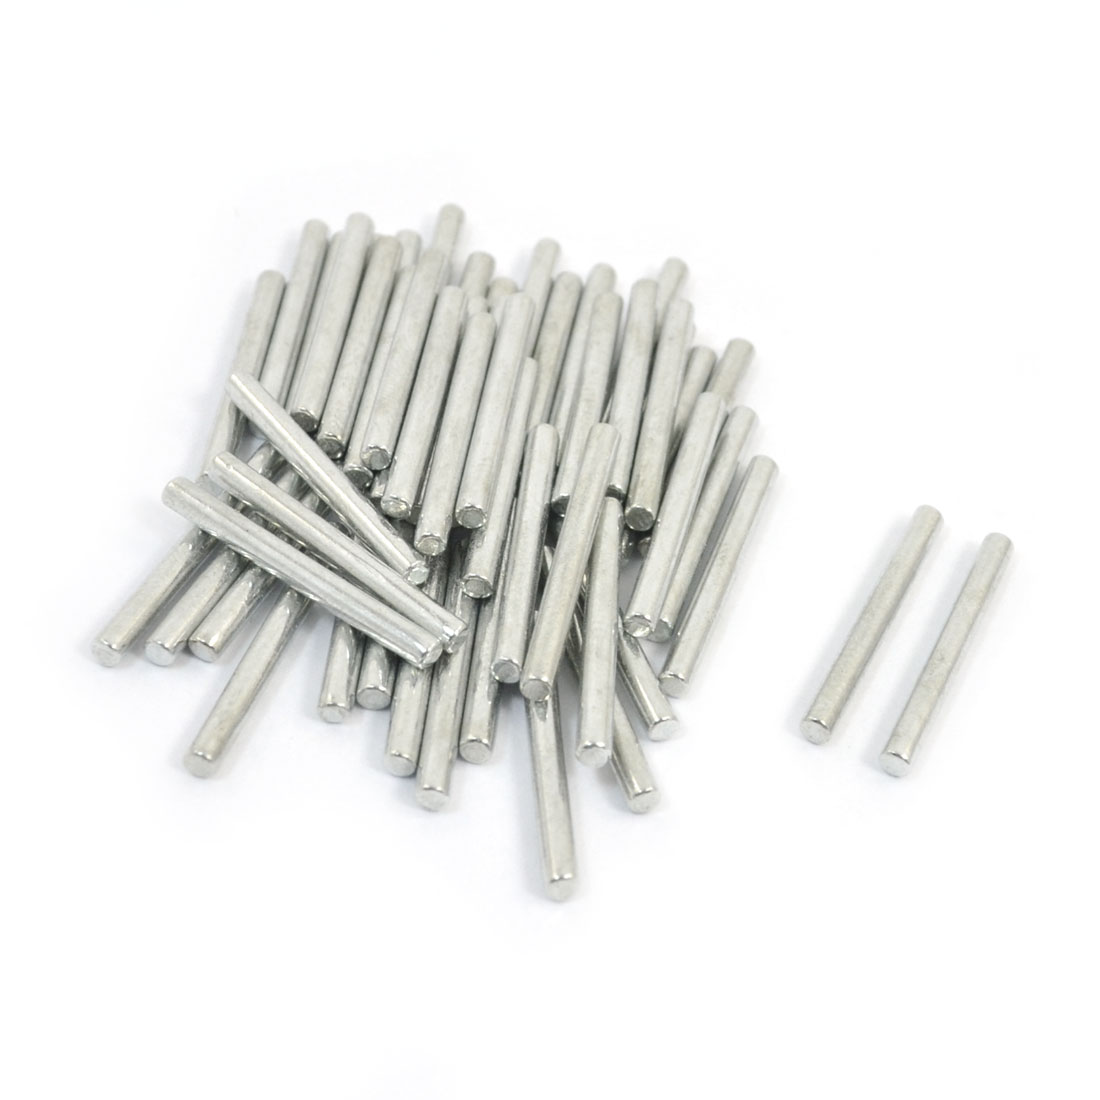 Replacement 2mm Dia 20mm Length Round Linkage Rod Bar 50Pcs for RC Car Model